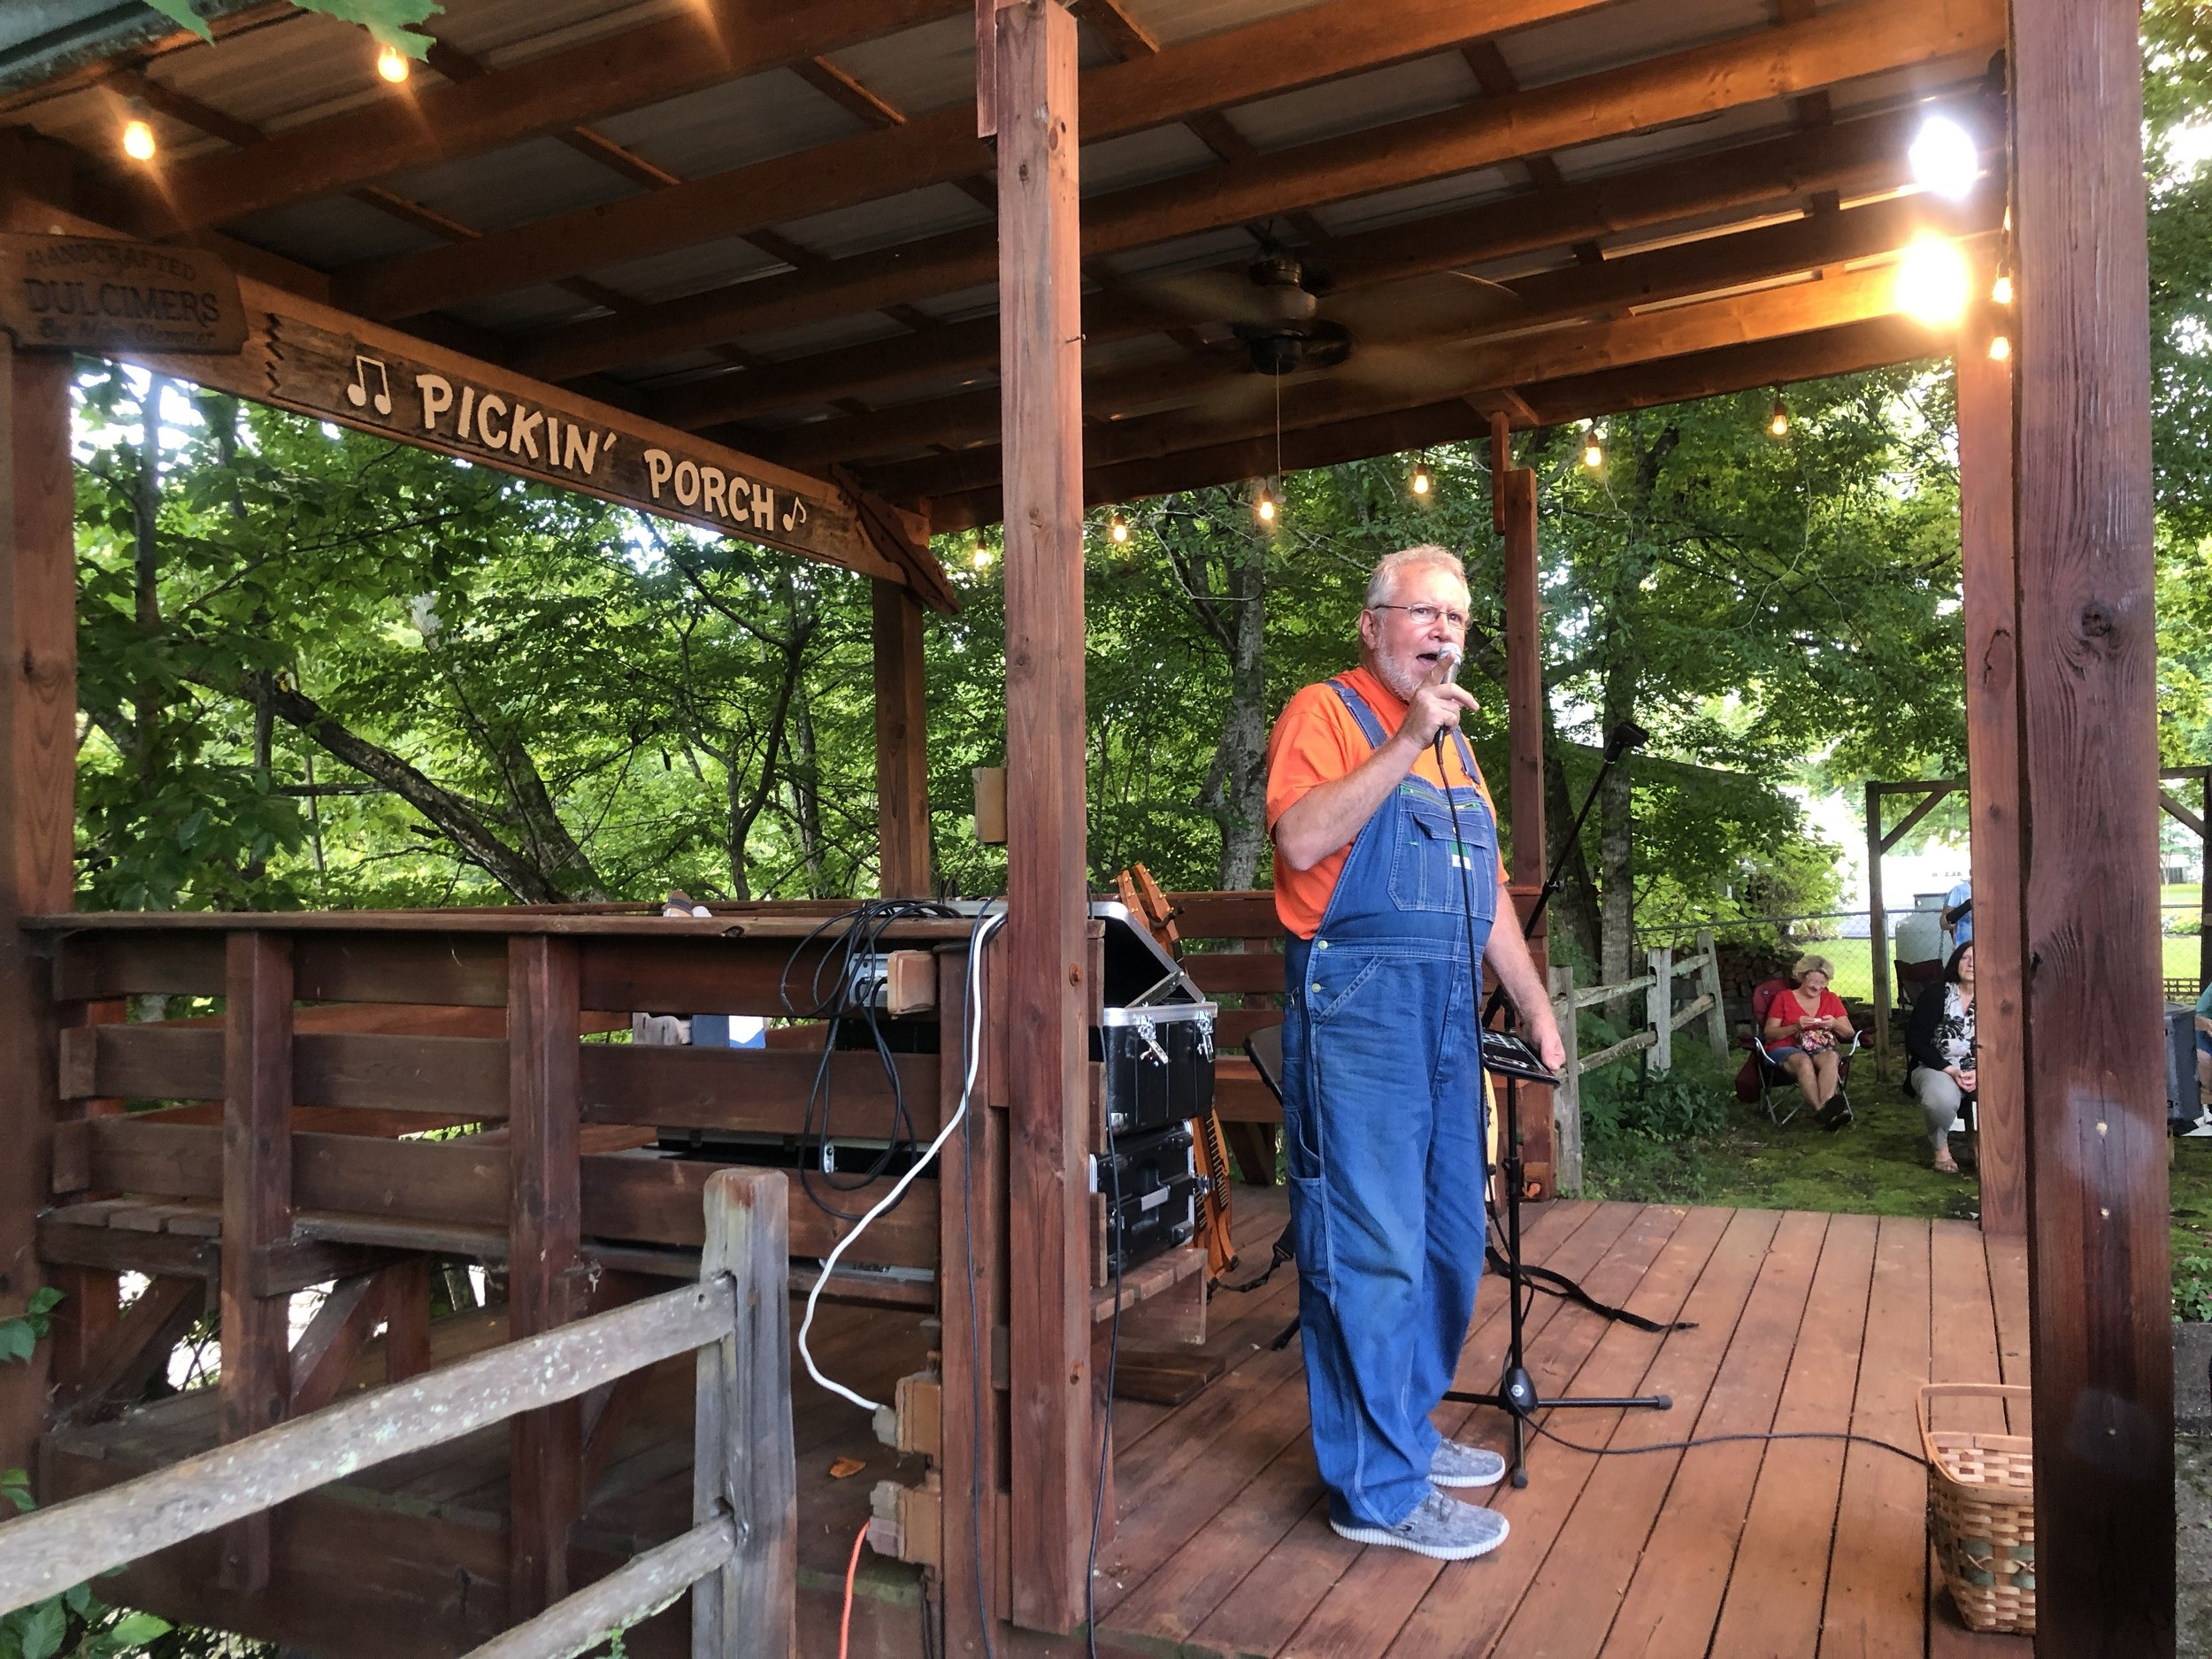 Mike Clemmer addresses the crowd from The Pickin' Porch.